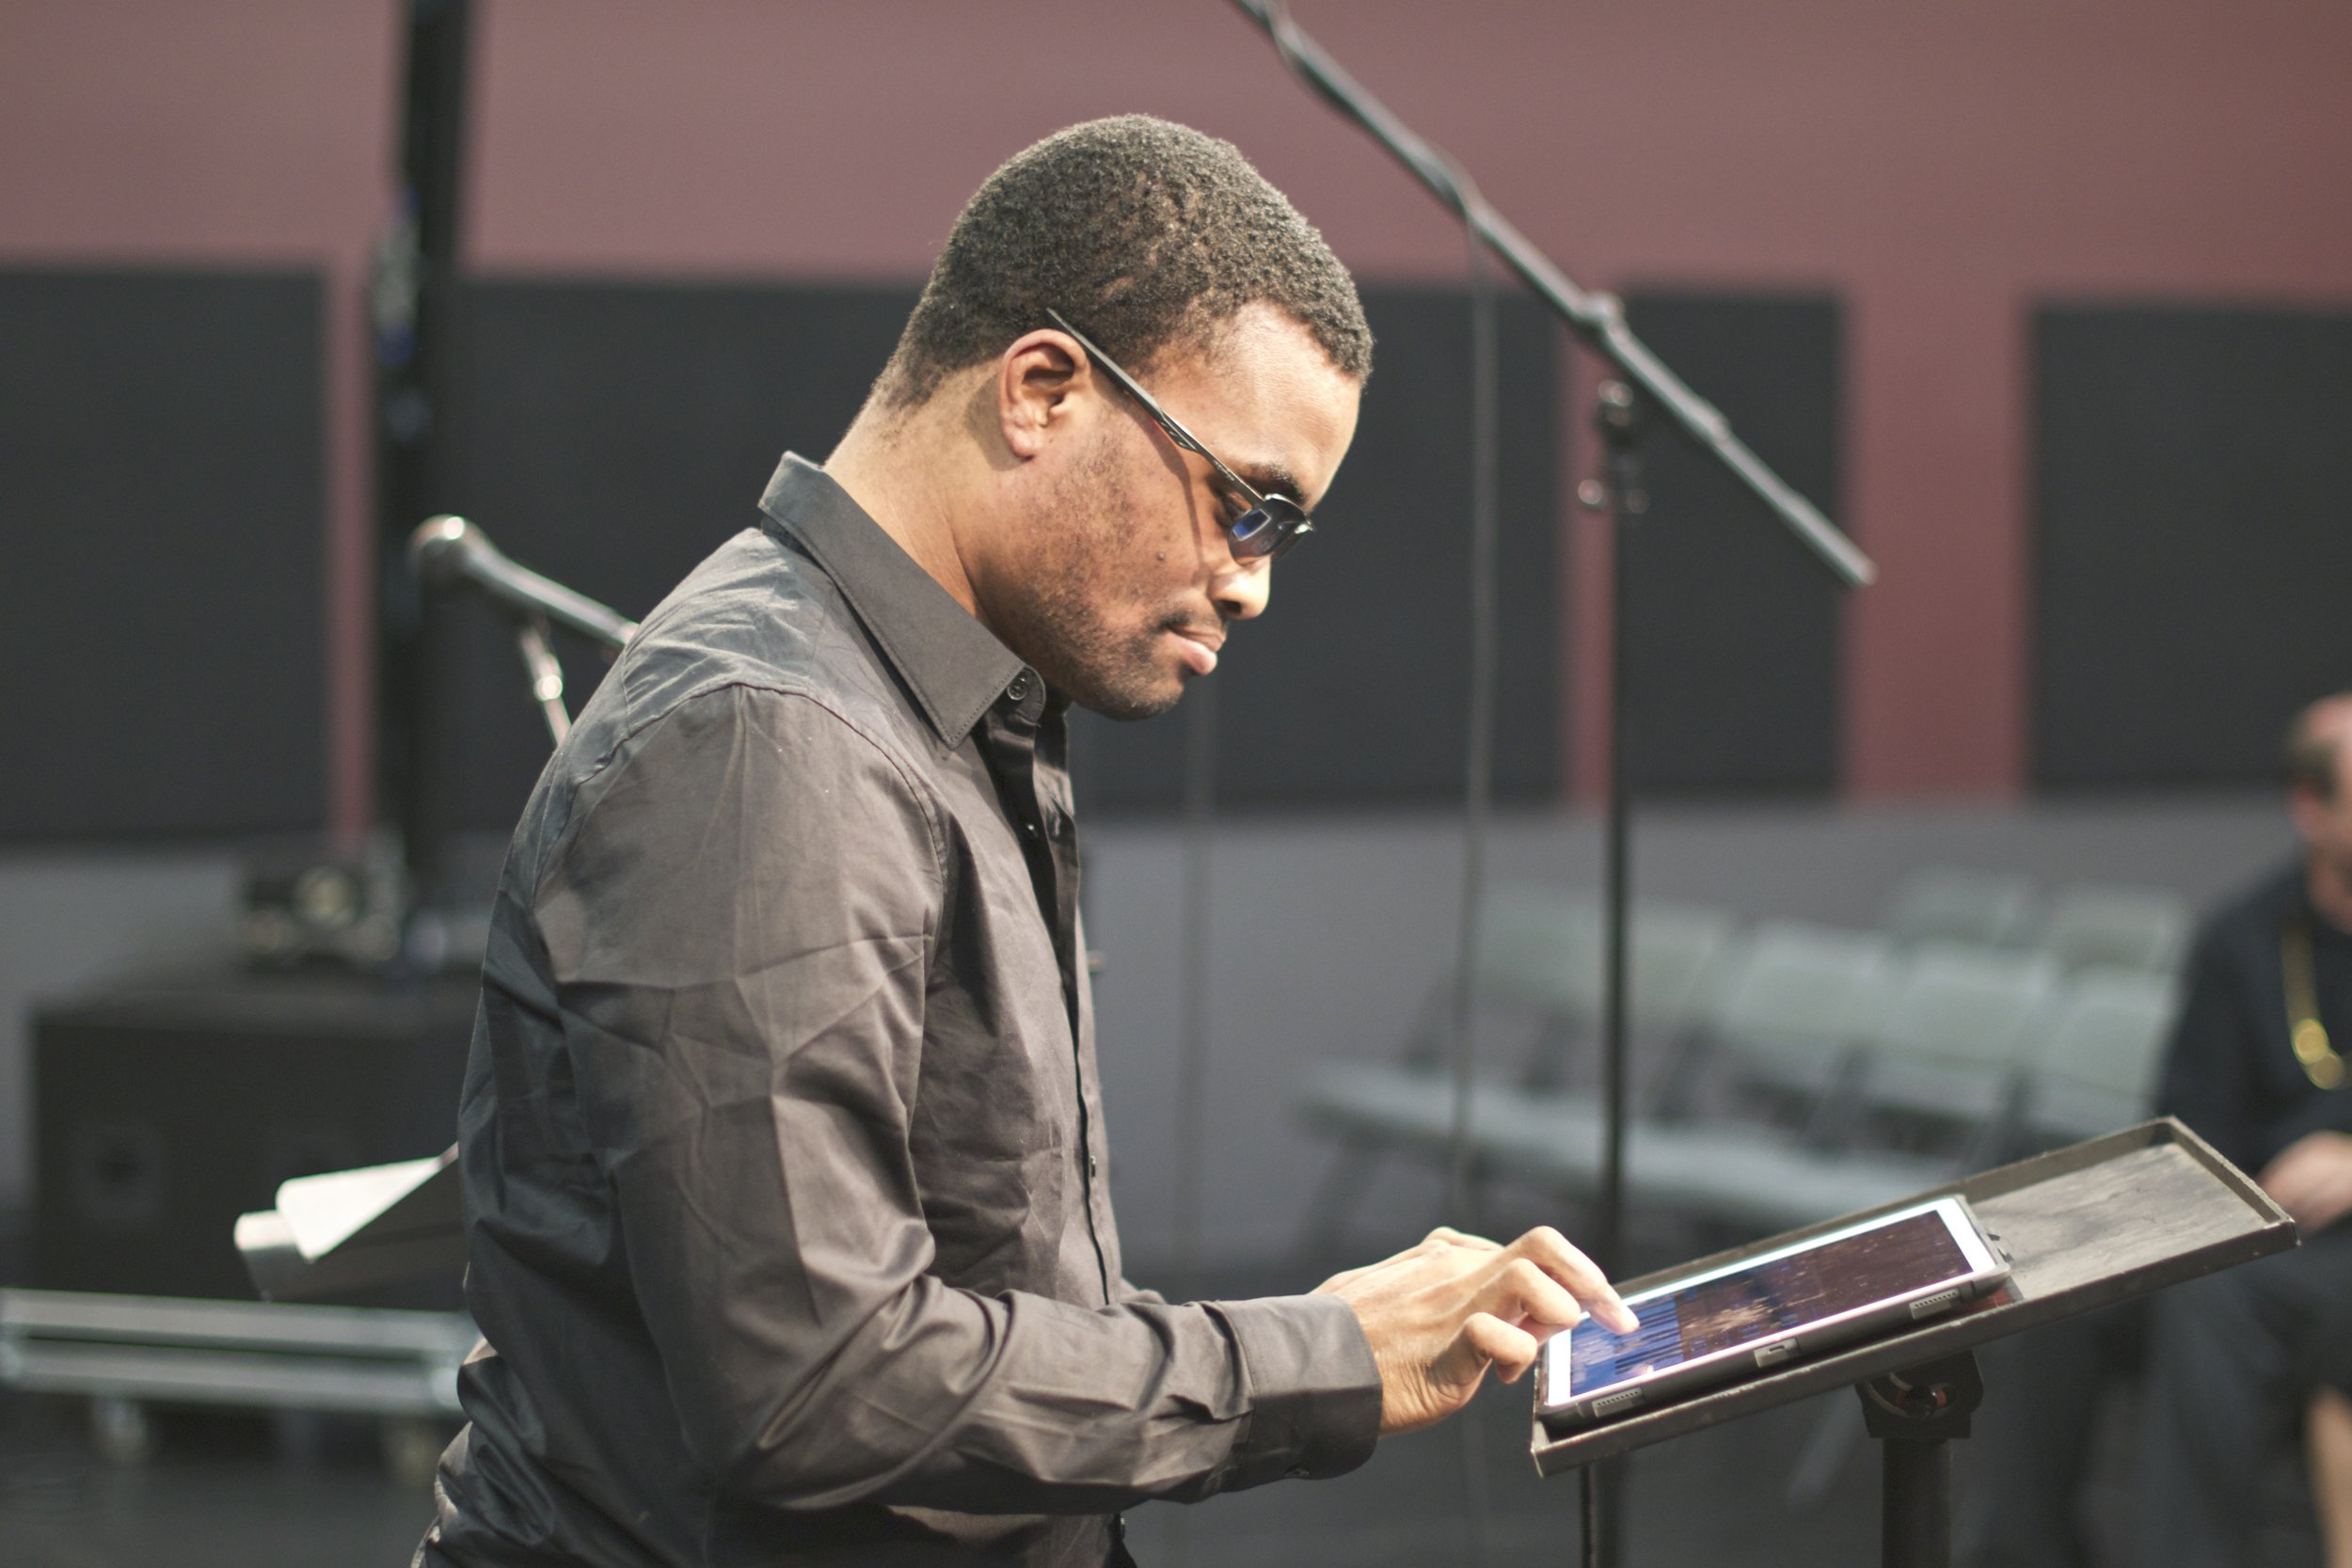 Man with dark glasses seen from the side, touching an ipad which sits on a music stand